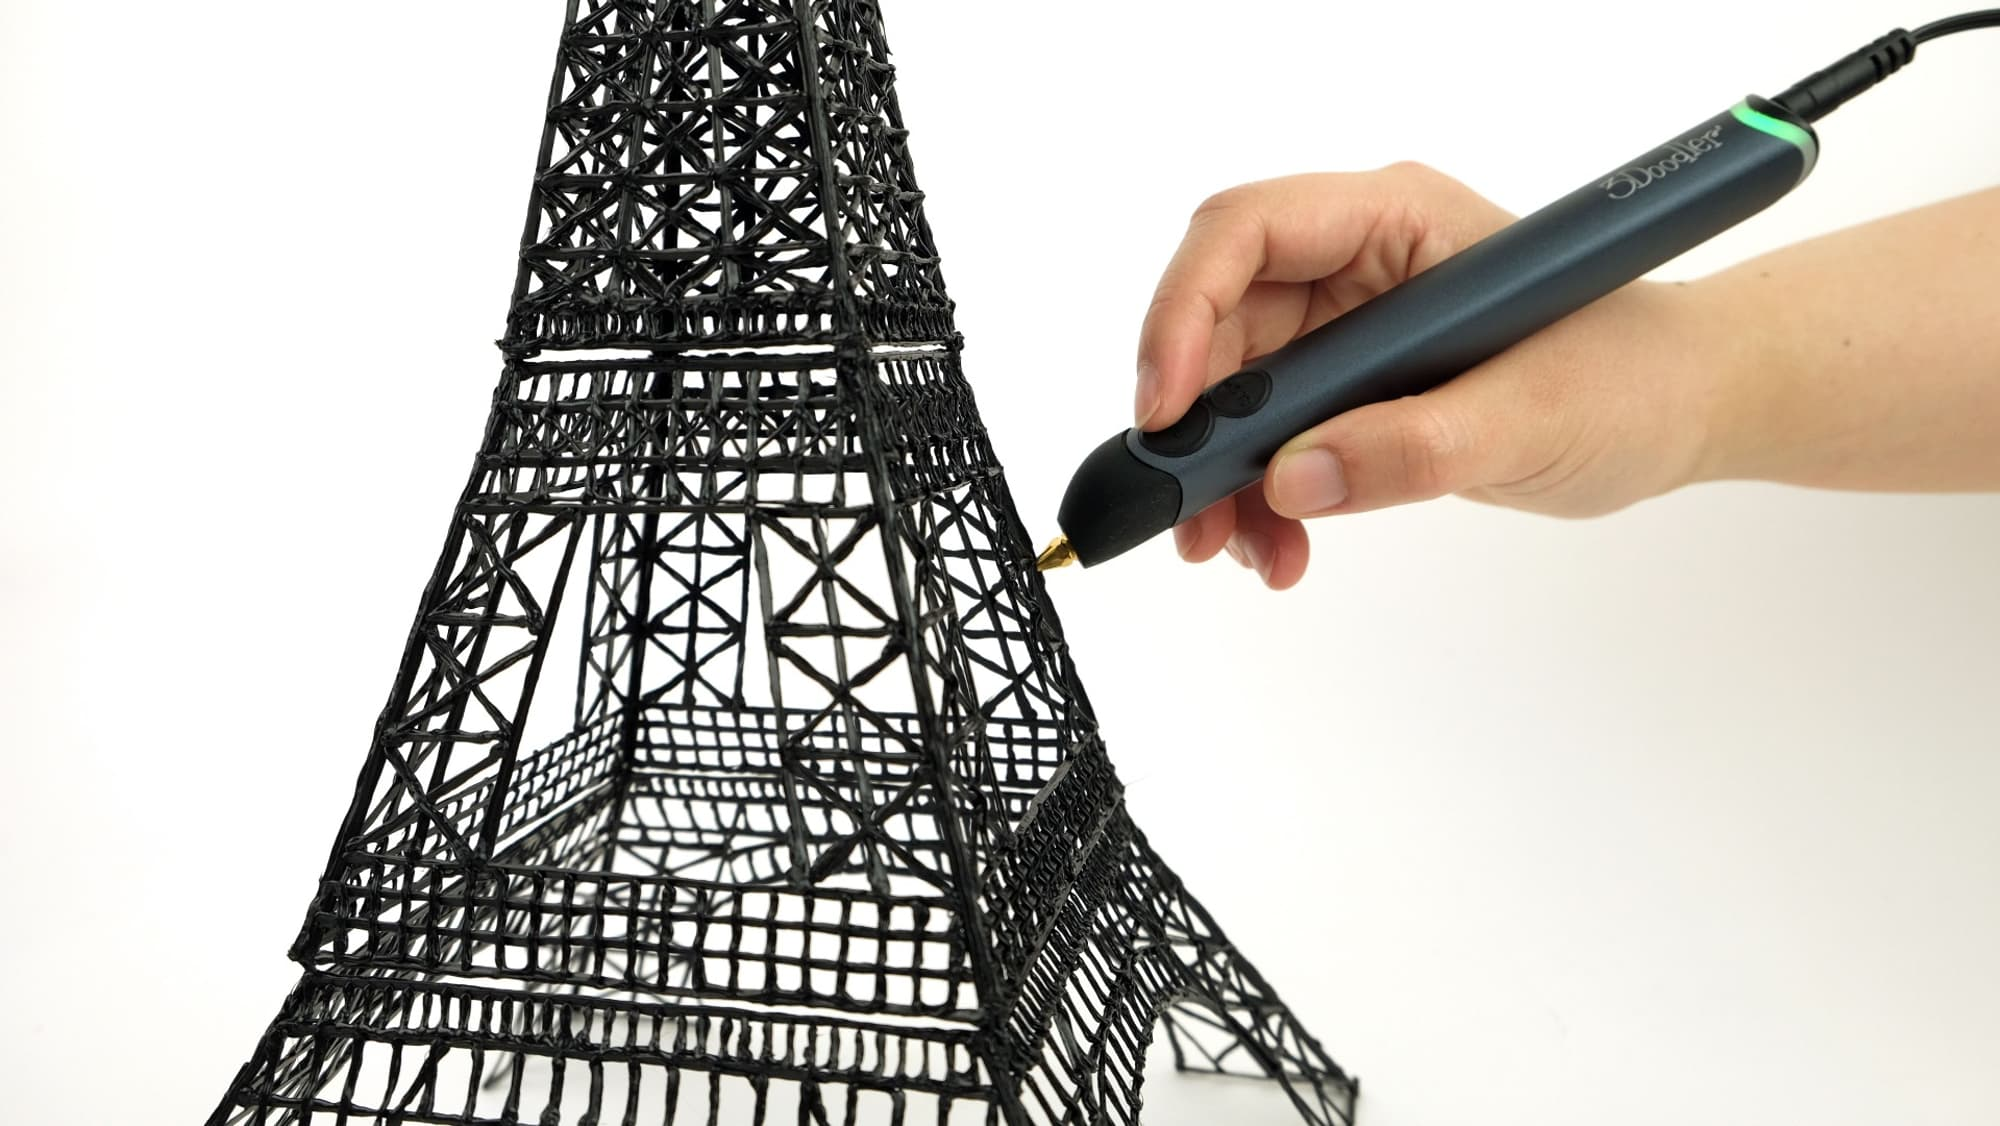 Christmas gifts for creatives, designers and geeks - 3doodler